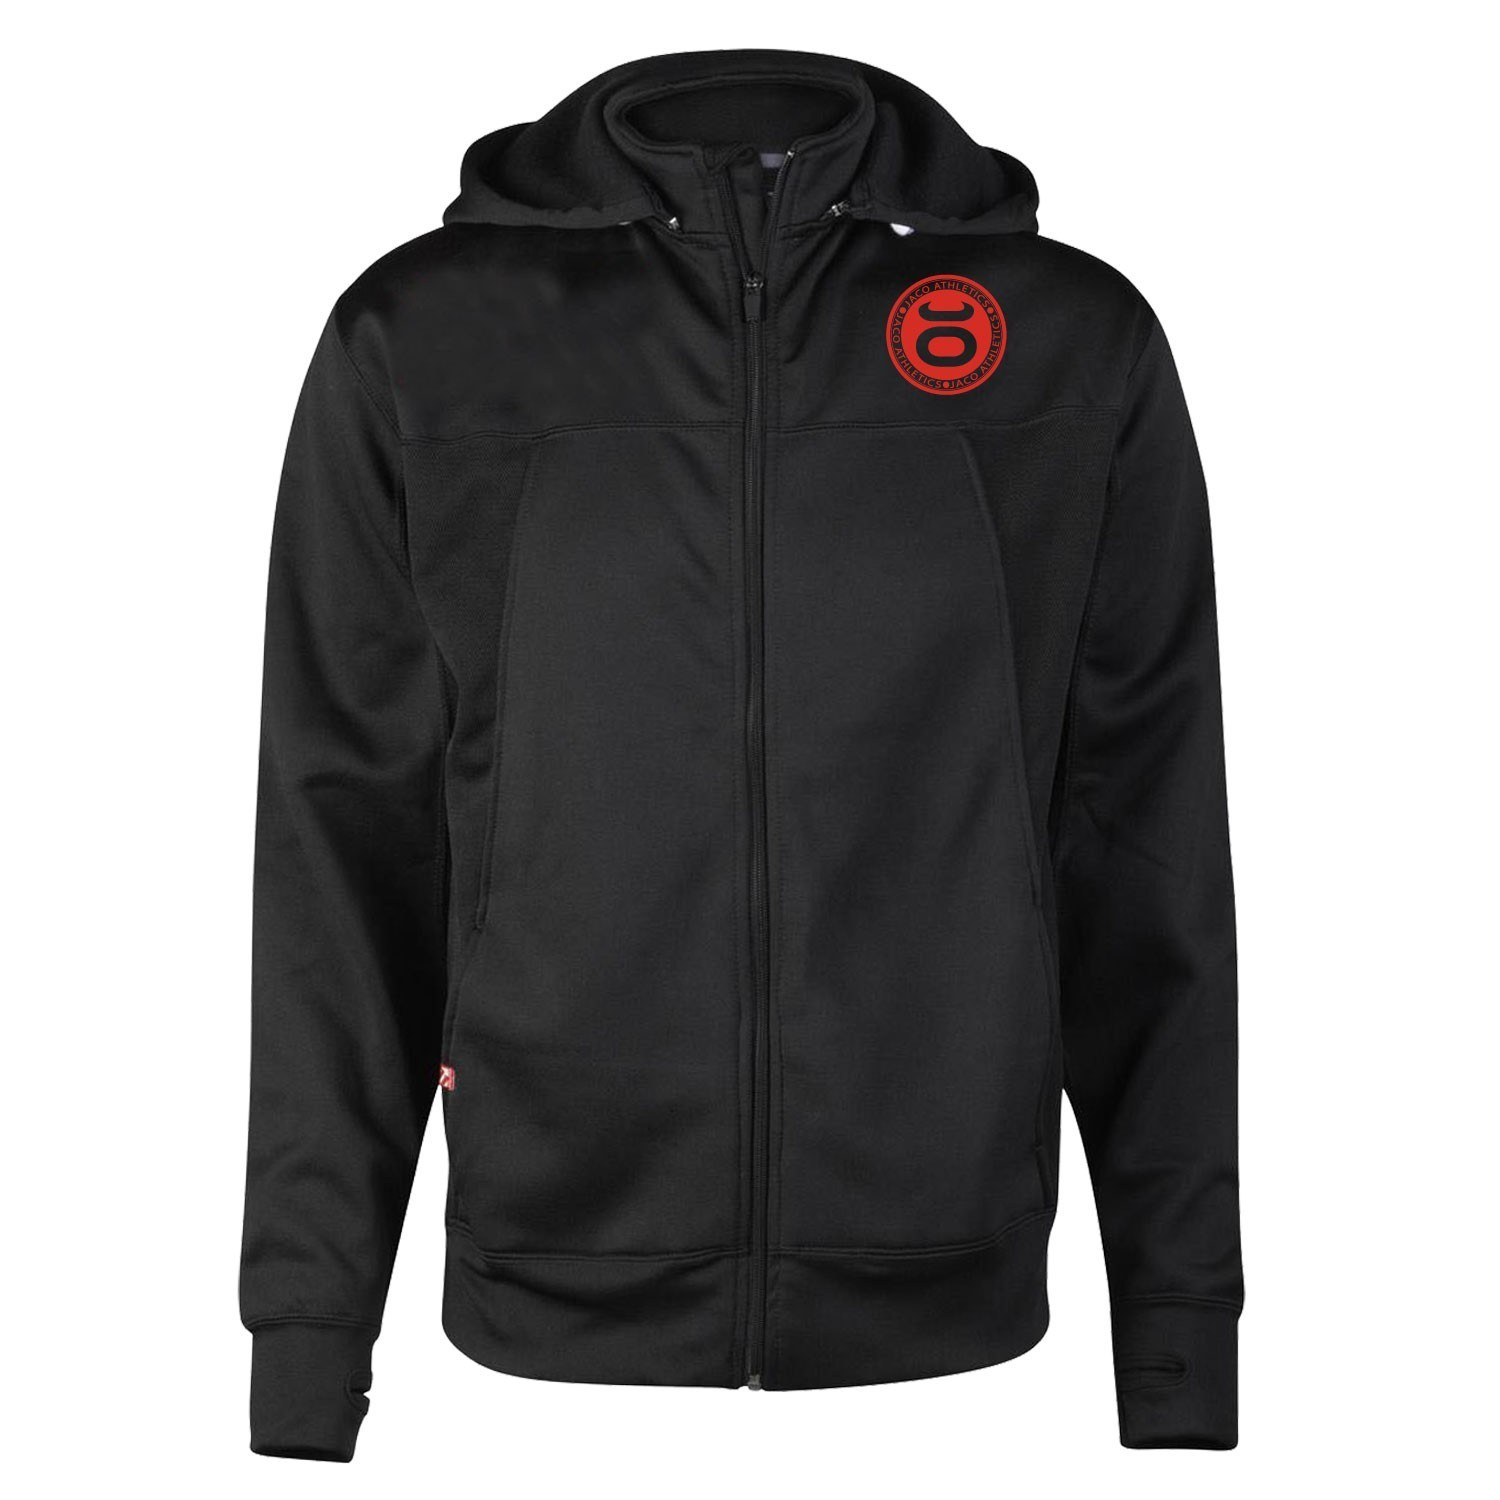 JACO Athletics Team Convertible Hoodie/Jacket (Black/Red)